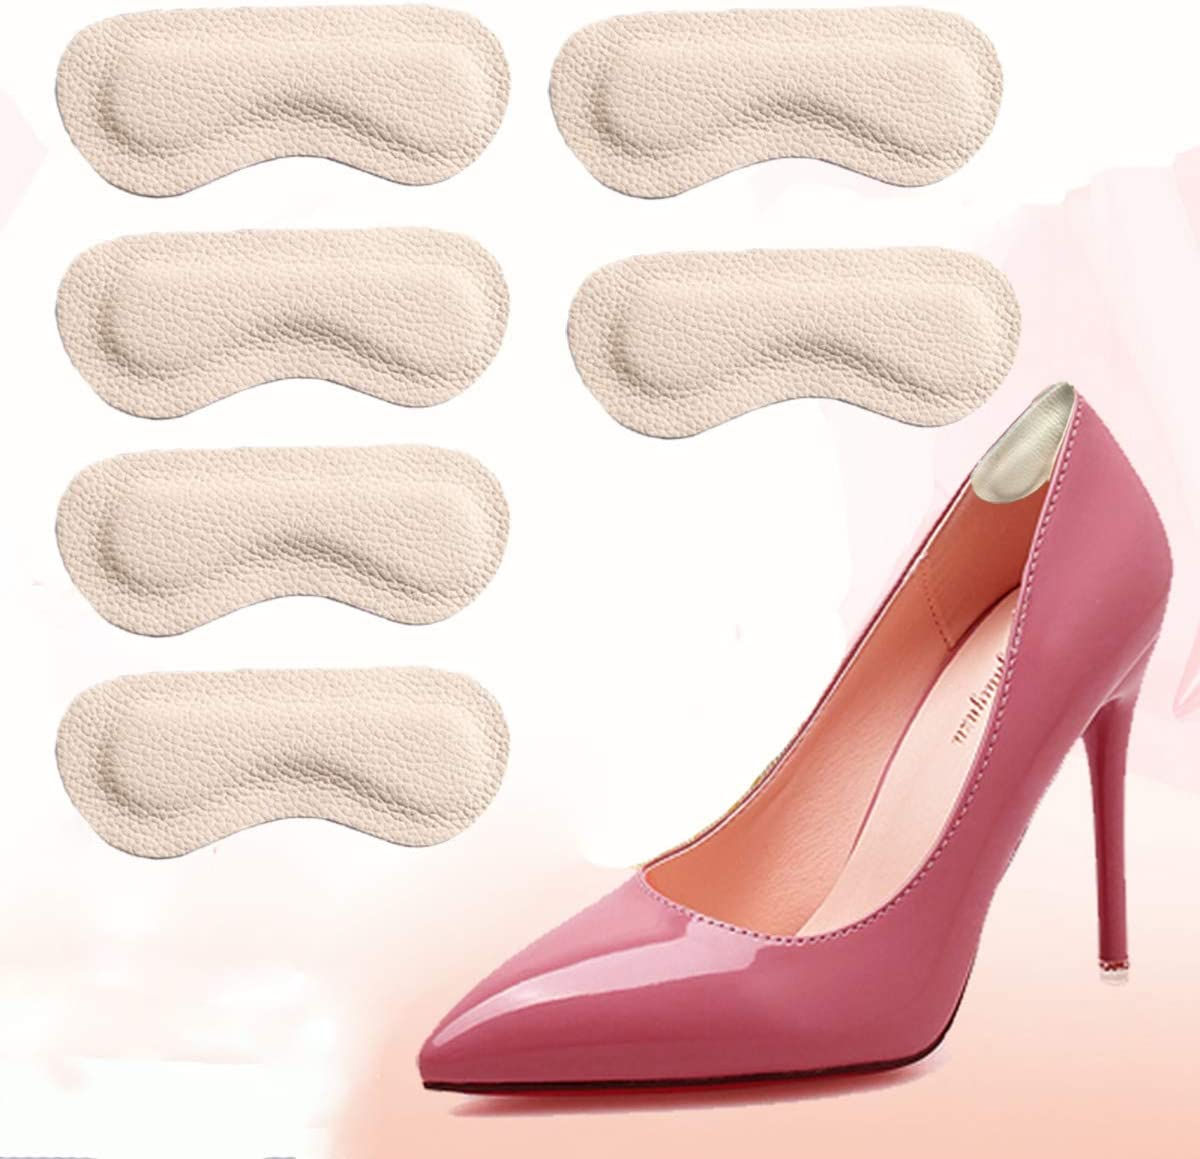 Heel Grips Cushion Inserts Max 46% OFF Pads One Shoes for Leather Special Campaign